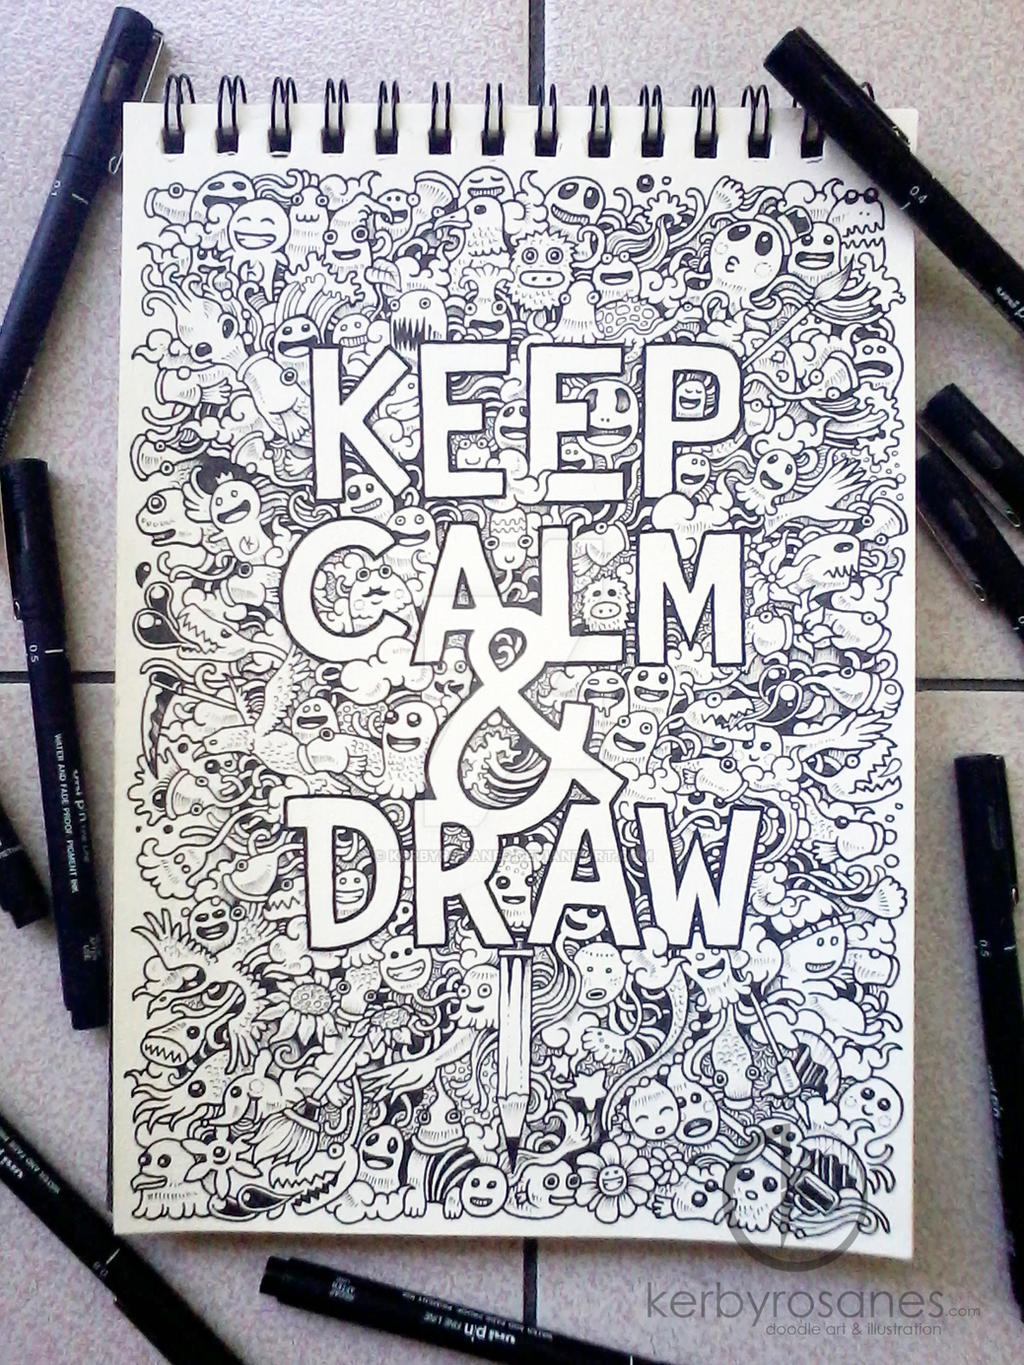 Doodle art keep calm and draw by kerbyrosanes on deviantart for How to draw doodles